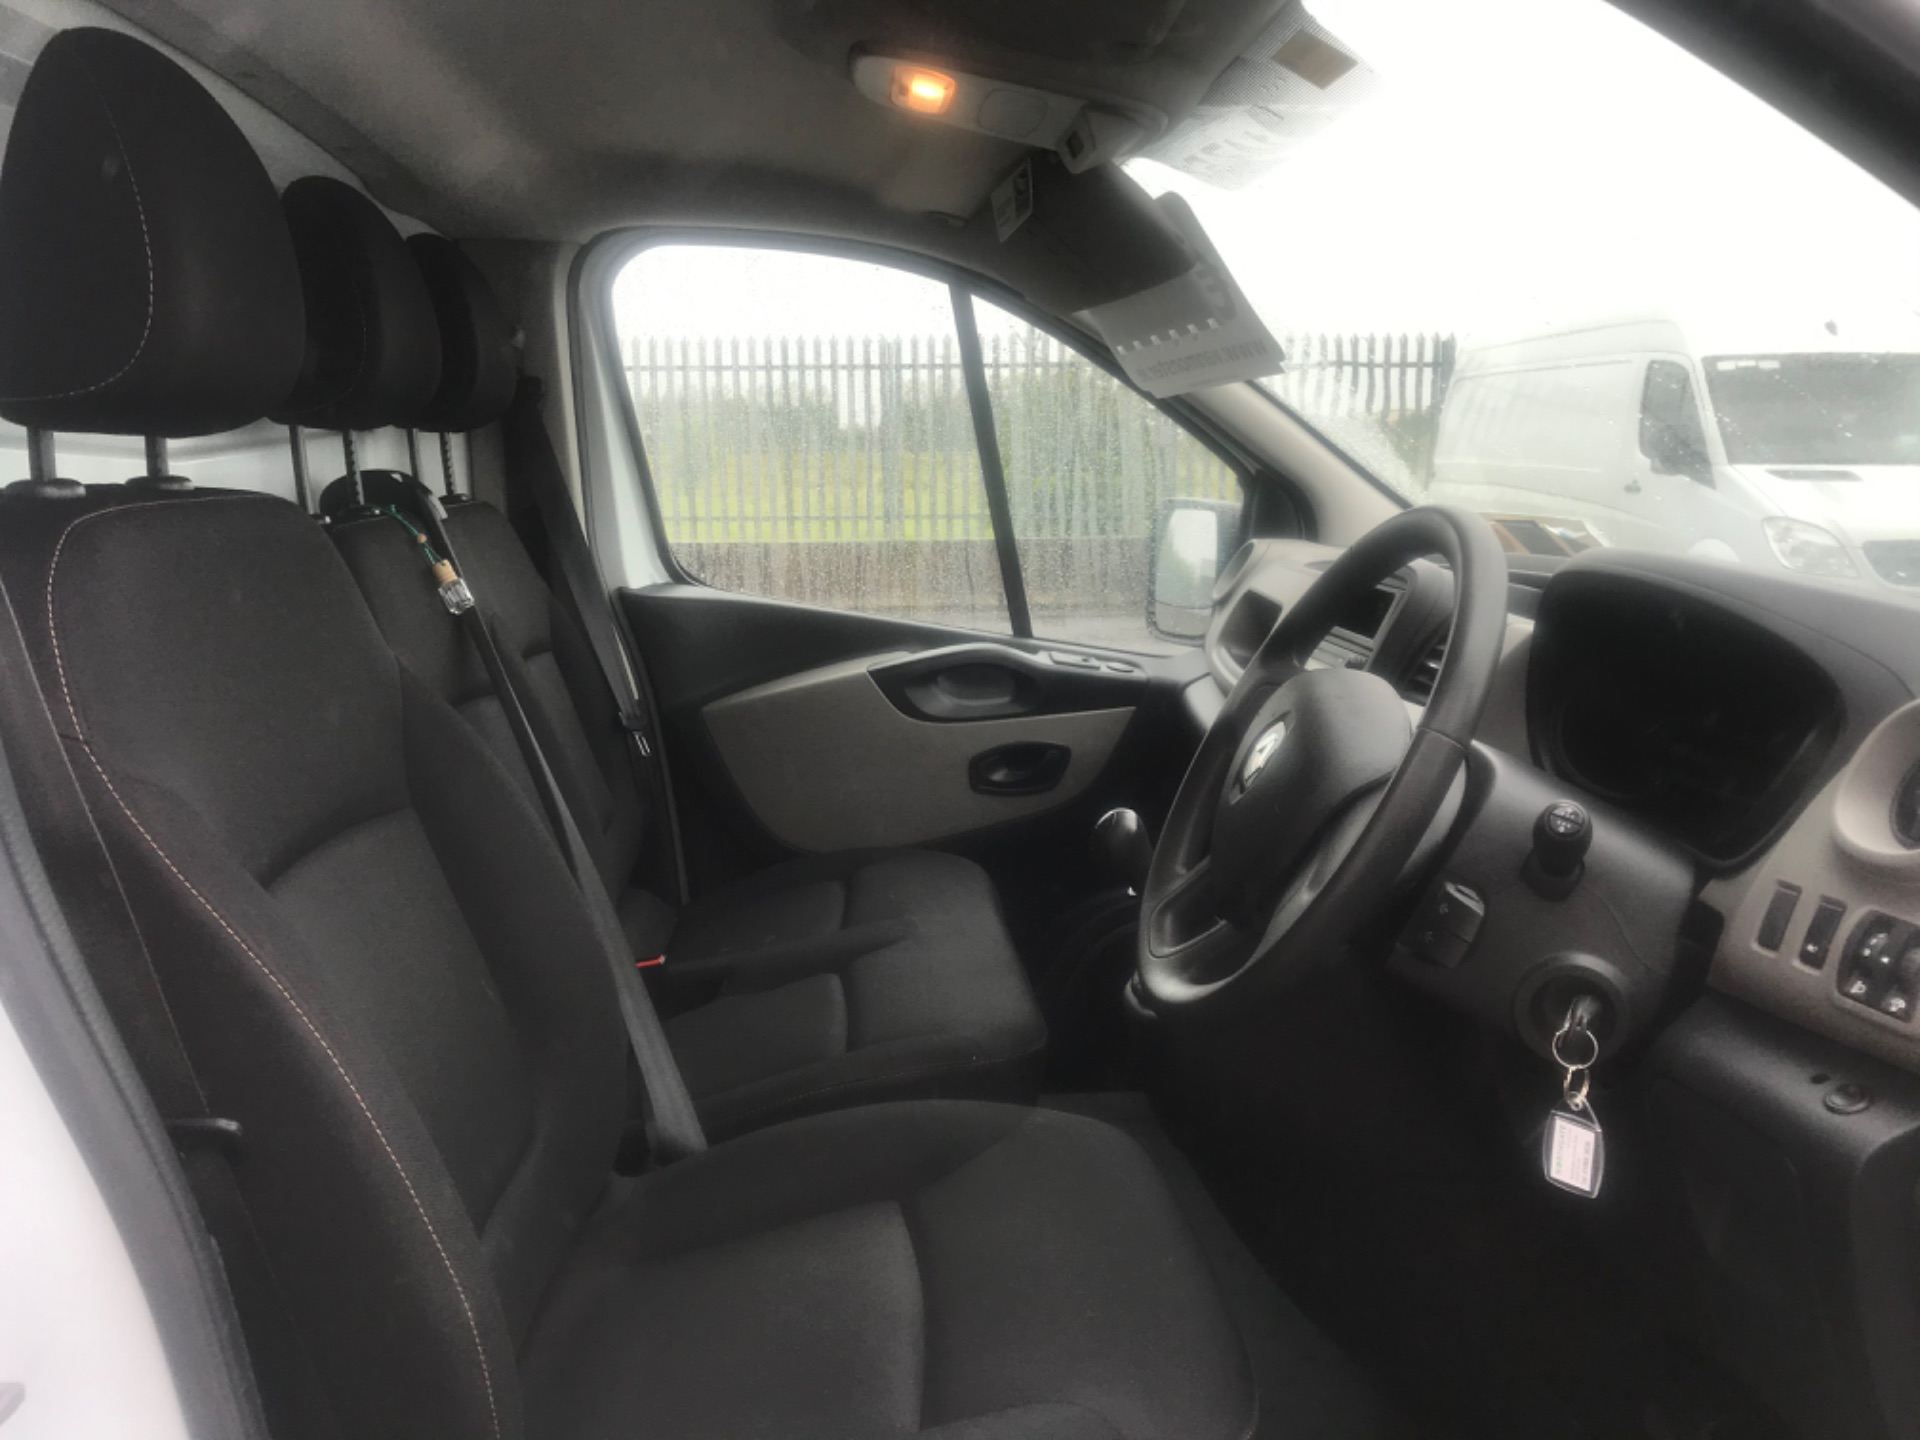 2017 Renault Trafic LL29 DCI 120 Business 3DR (172D19366) Image 12